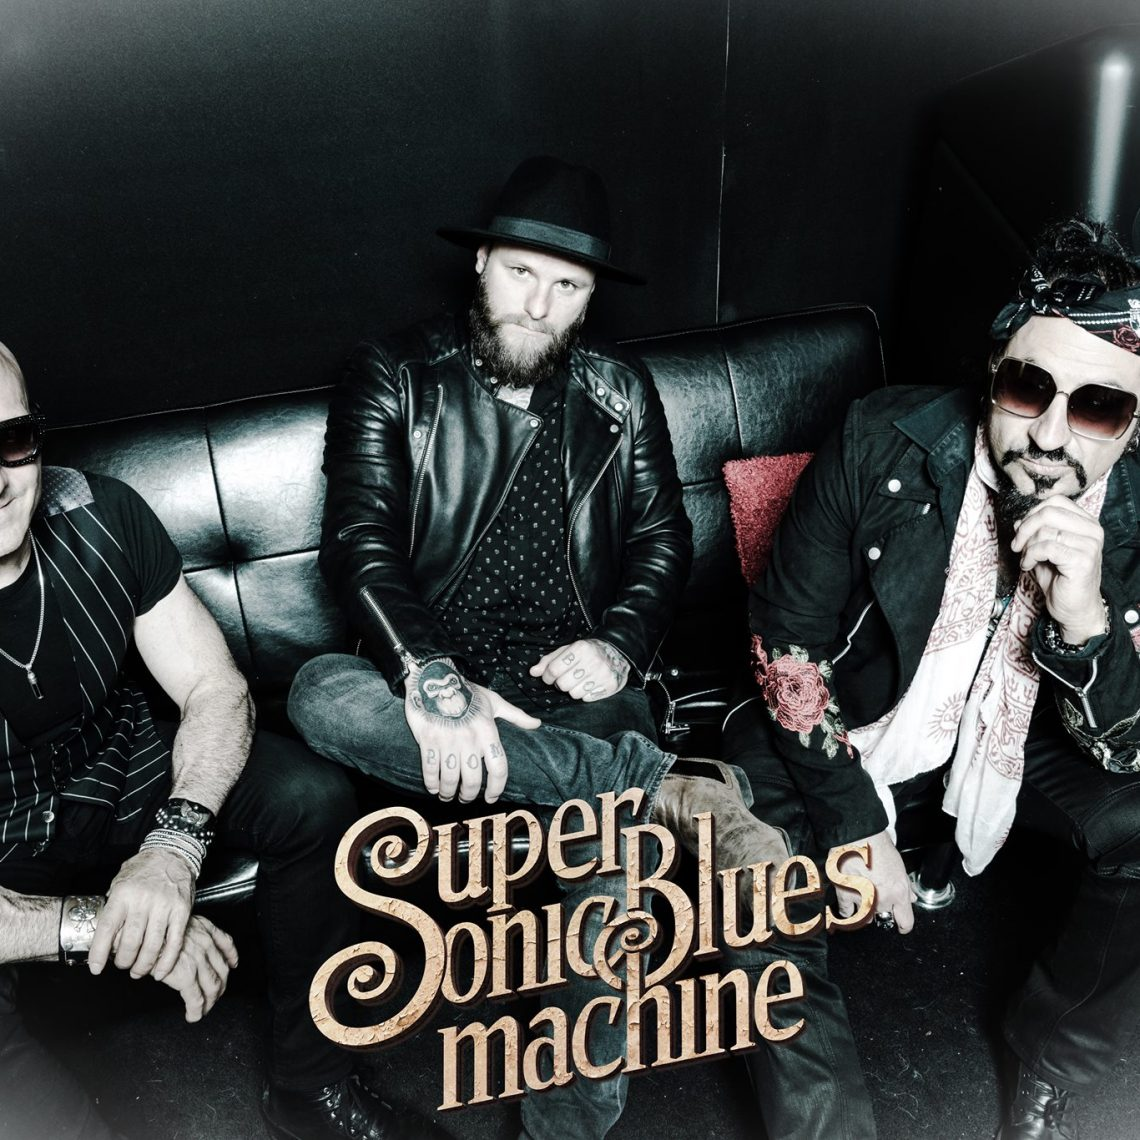 Supersonic Blues Machine announce new album 'Road Chronicles: Live' + reveal lyric video 'Running Whiskey' ft. Billy F. Gibbons